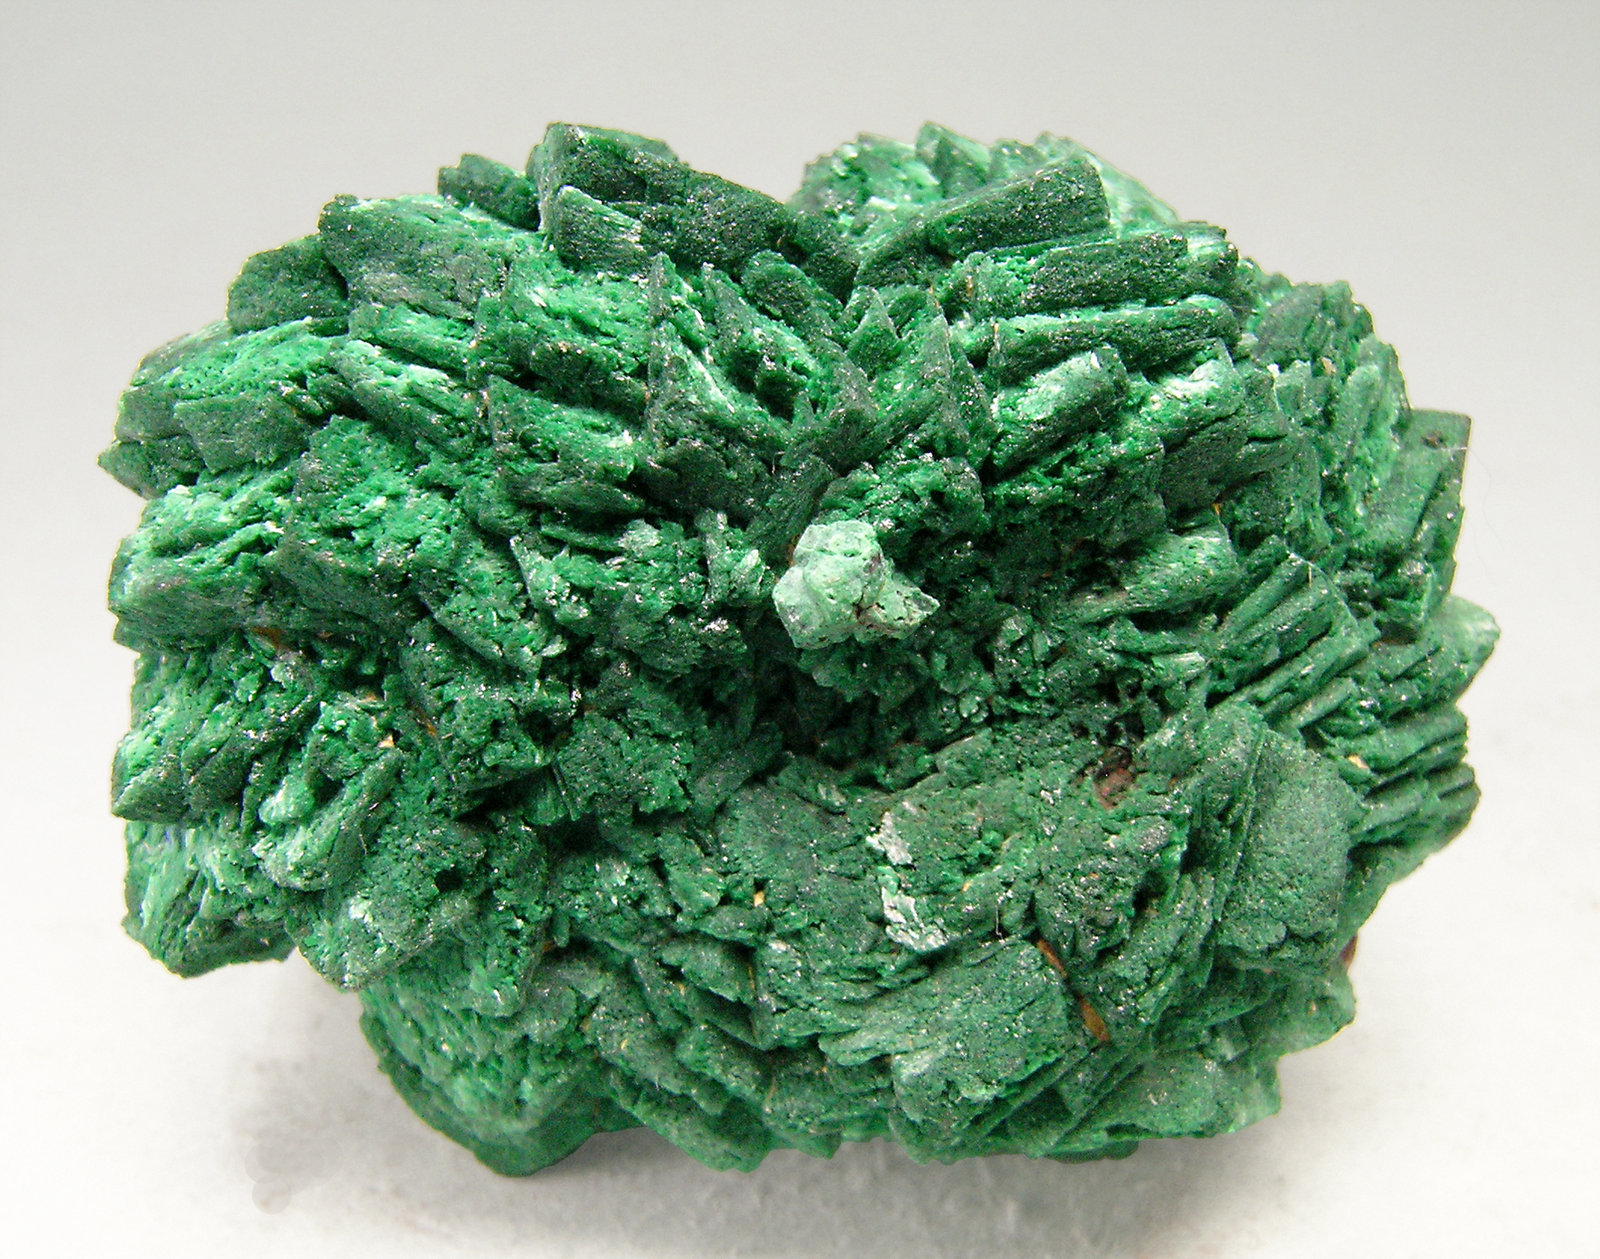 specimens/s_imagesN6/Malachite_after_Azurite-TA14N6r.jpg